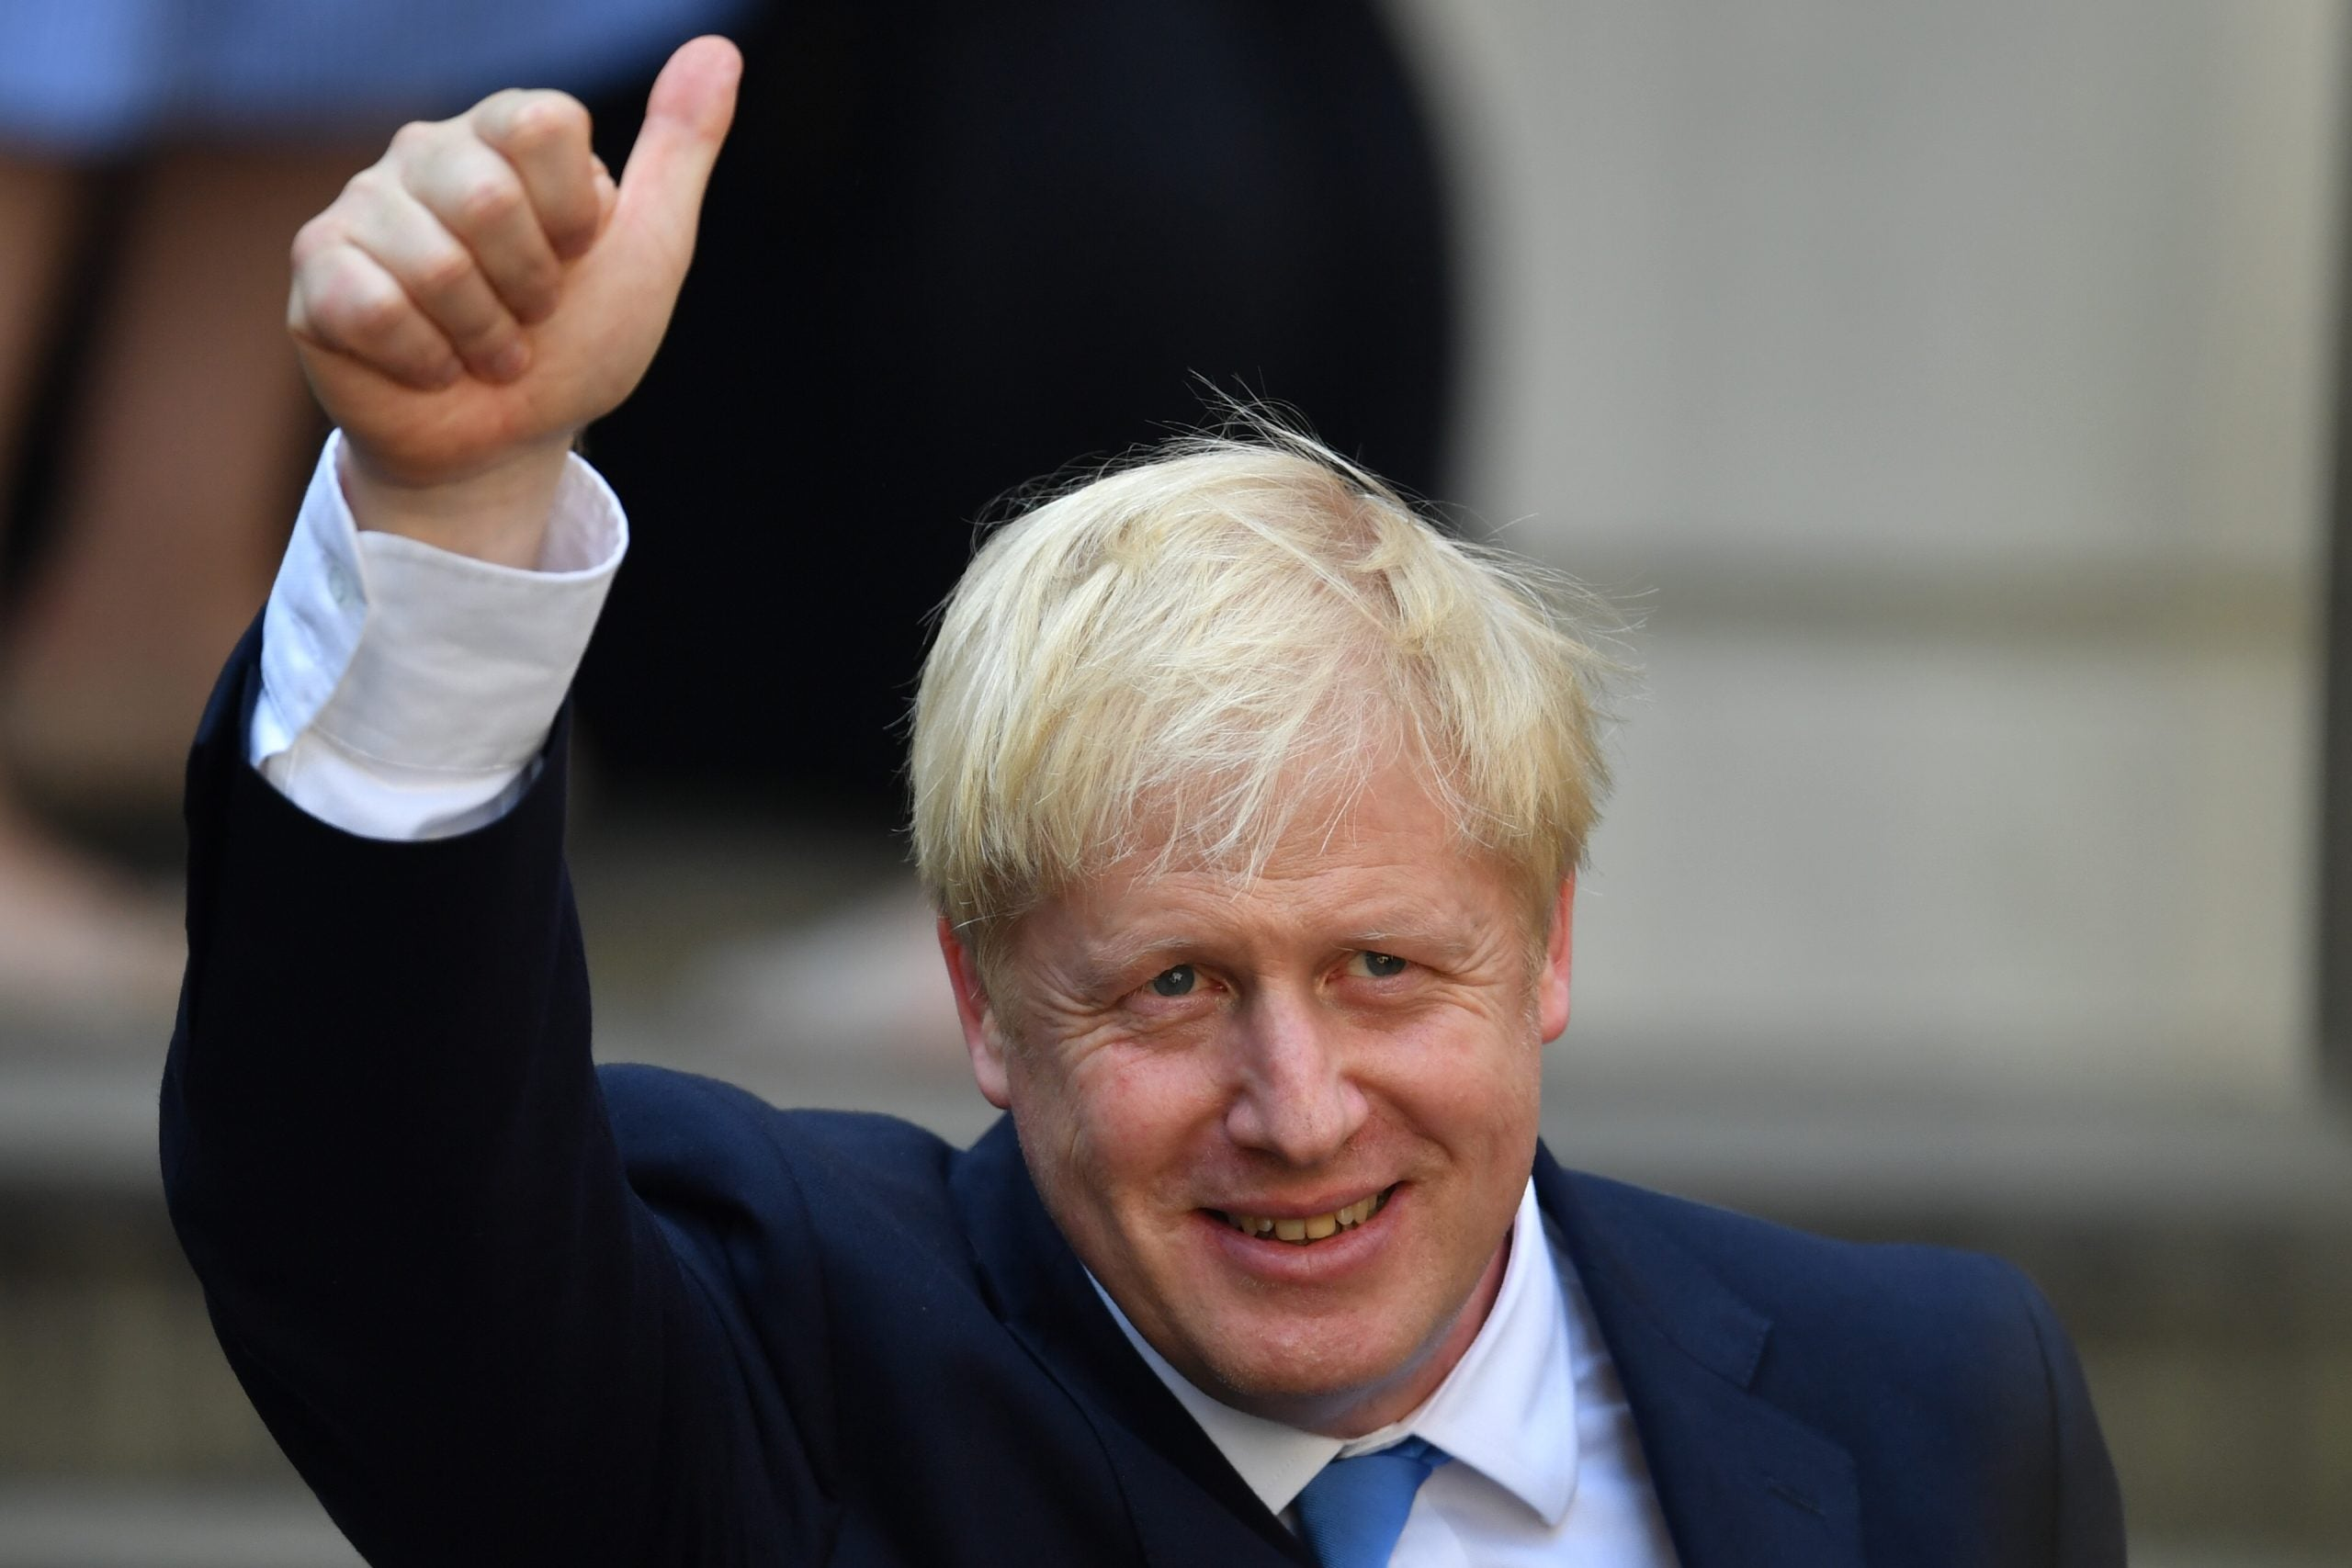 Leader: A huckster in Downing Street